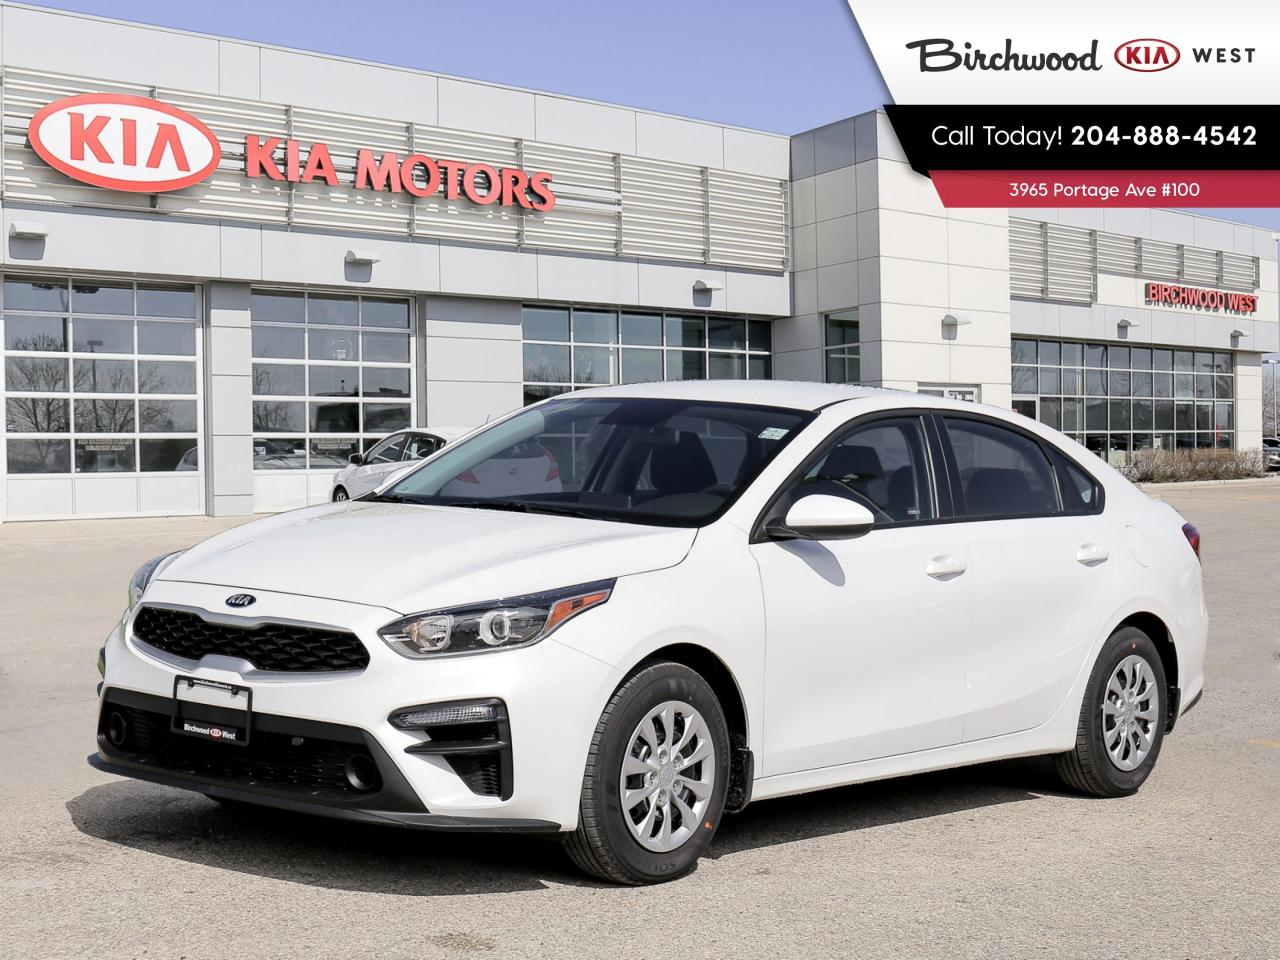 used 2020 kia forte lx for sale in winnipeg, manitoba carpages.ca